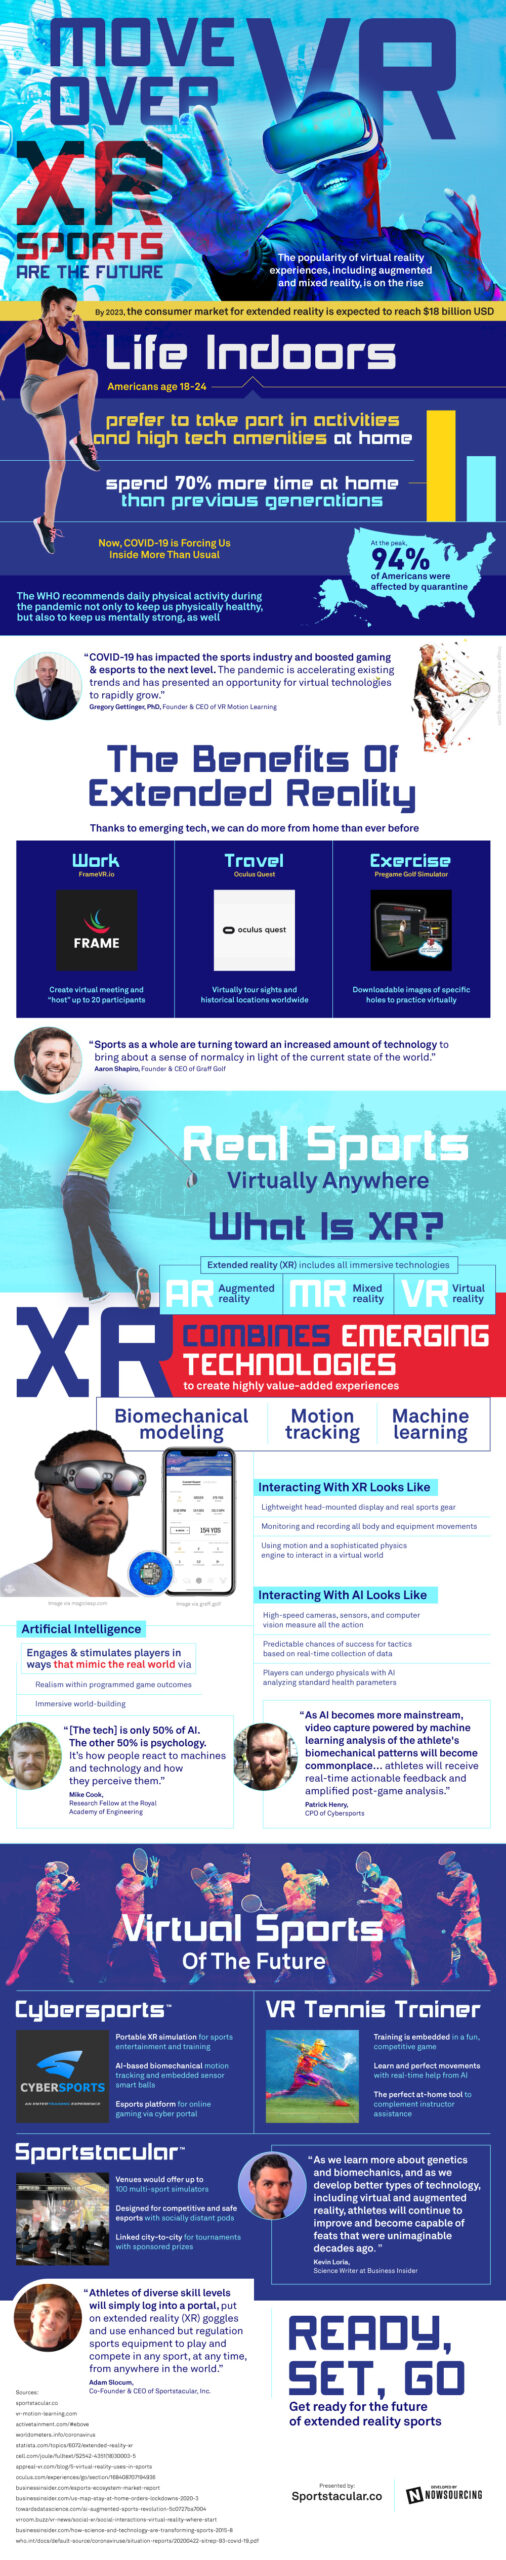 XR and VR sports are the future